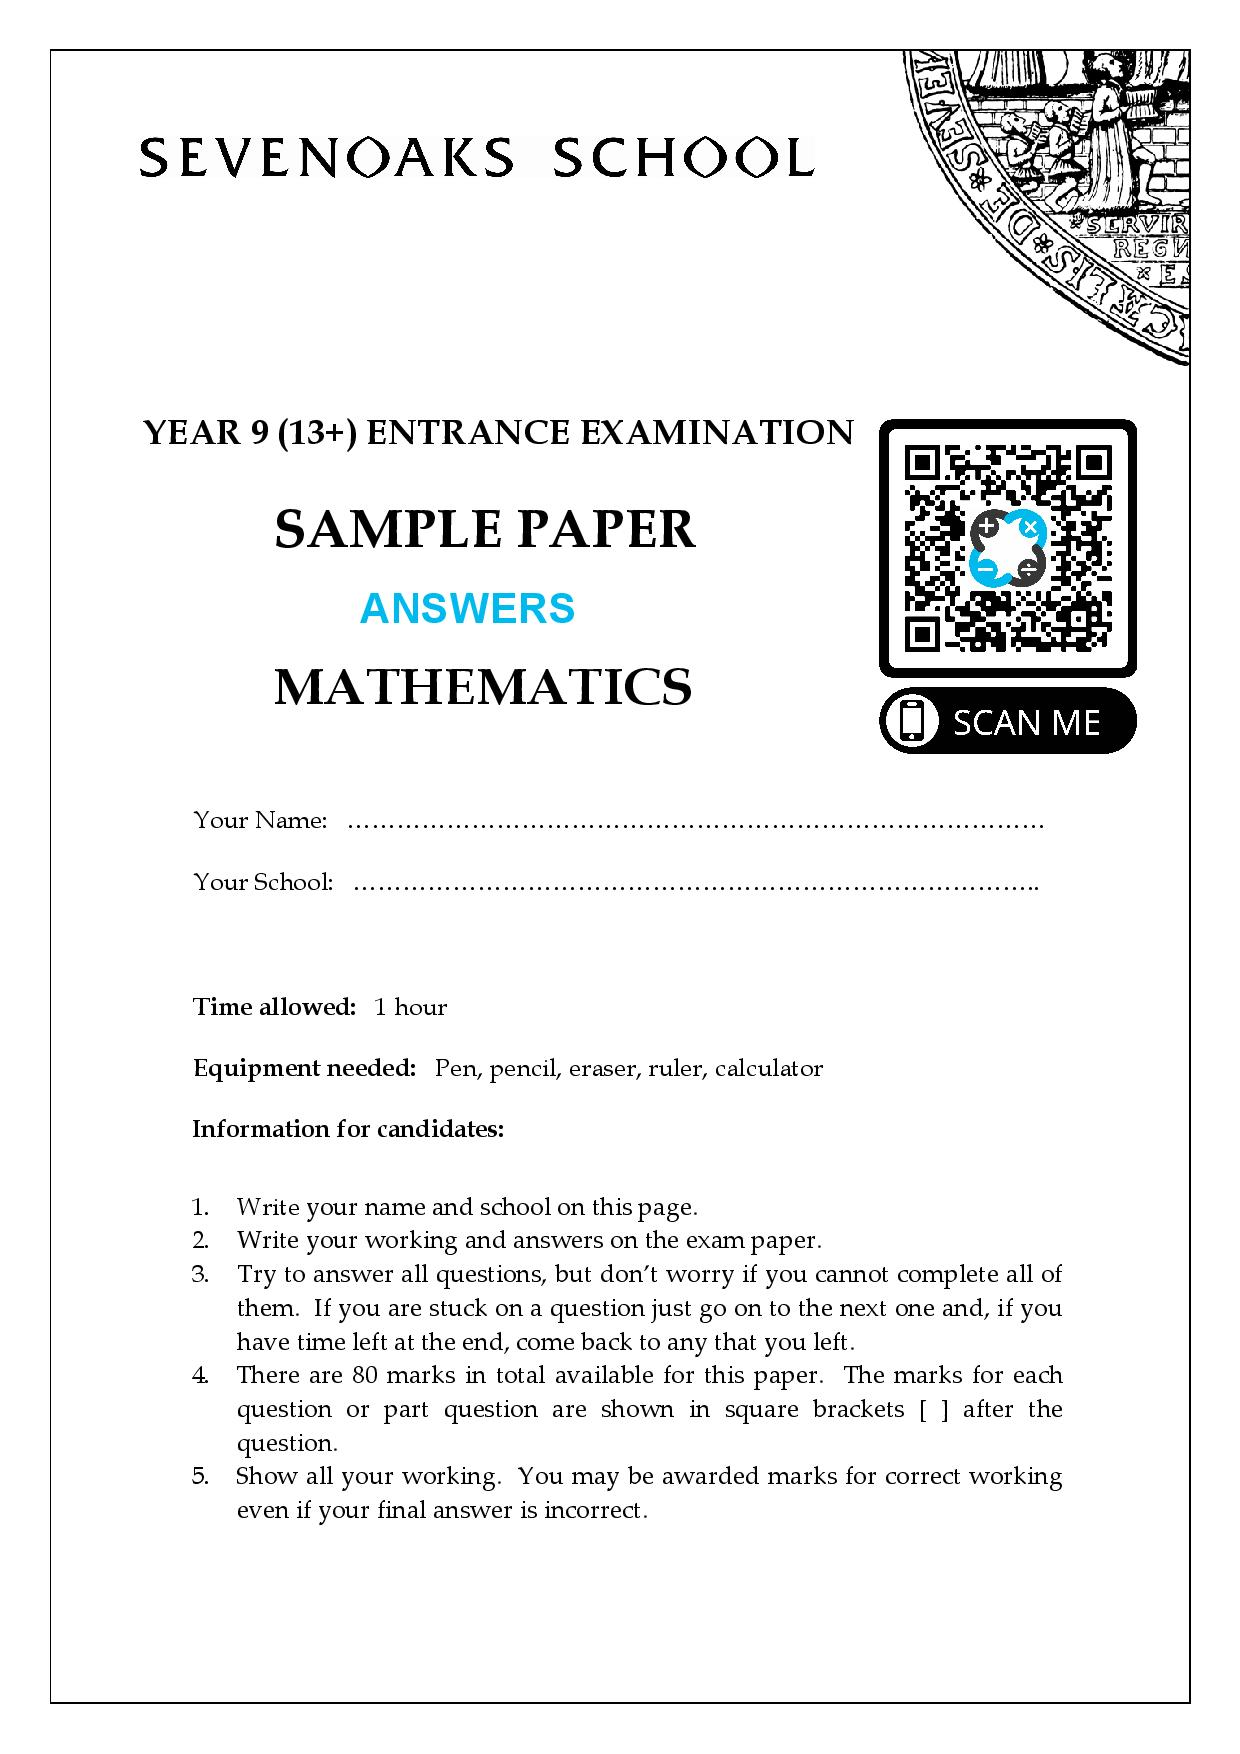 YEAR 9 13 ENTRANCE EXAMINATION SAMPLE PAPER MATHEMATICS Answer Paper 1 page 001